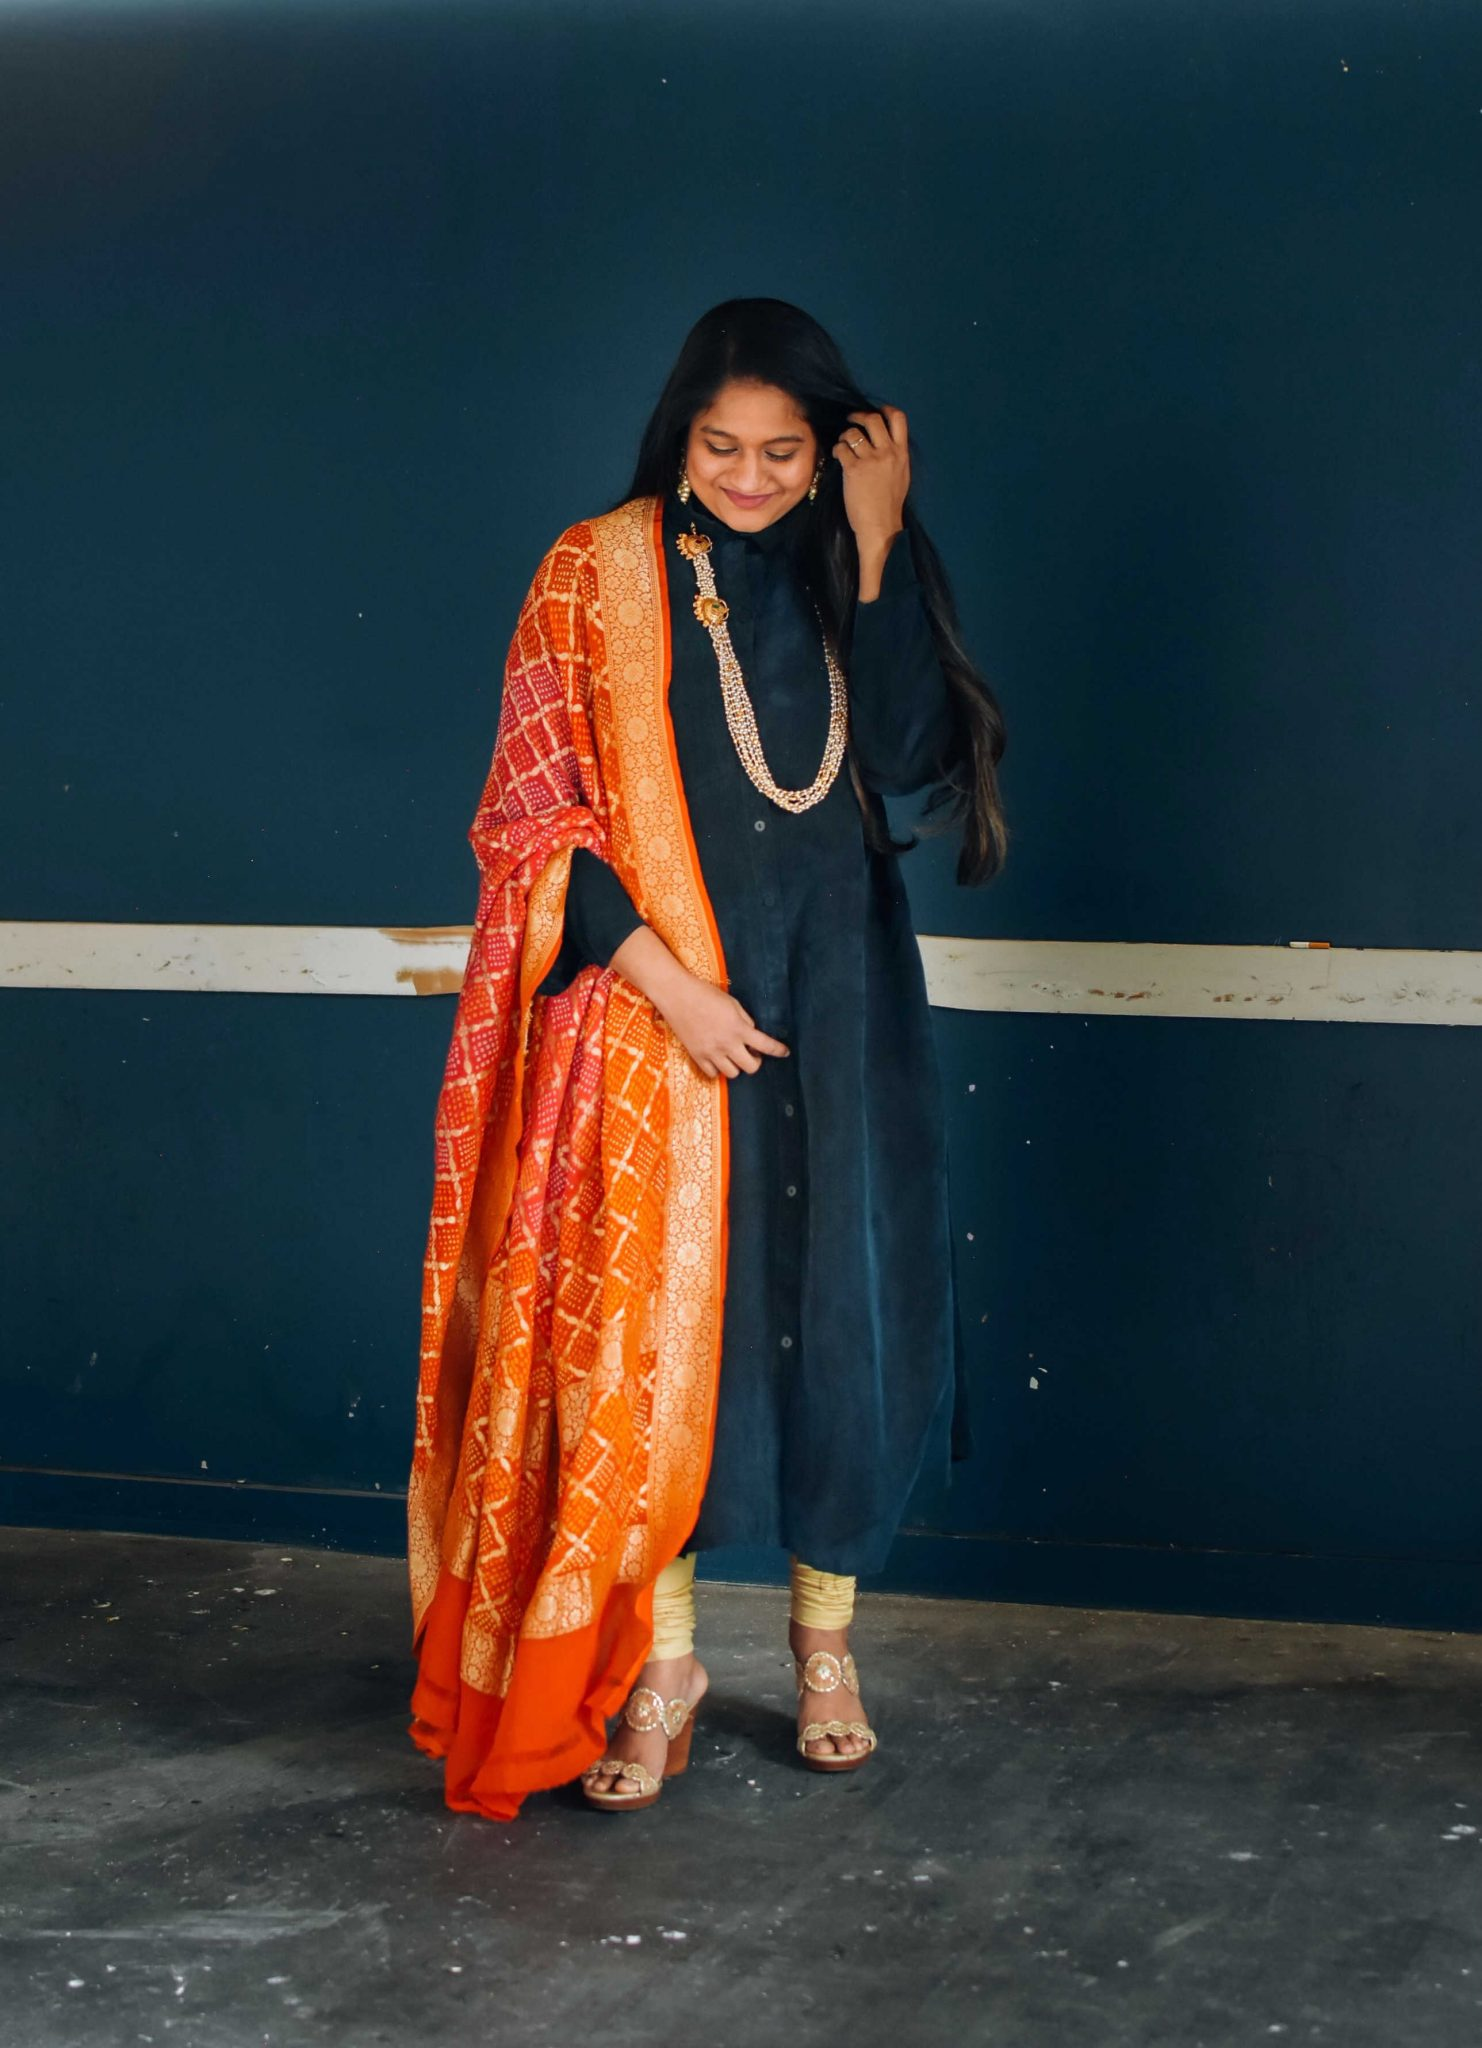 Sankranti Outfit- Wearing The Frock NYC dress, bandhani dupatta,Jack Roger Lauren Wedge Sandals, Pearl necklace- Indo western outfit ideas |Amazon Kurti Sets by popular Maryland modest fashion blog, Dreaming Loud: image of a woman wearing a Froknyc shirt dress, gold leggings, gold wedges and Keerthi statement jewelry.